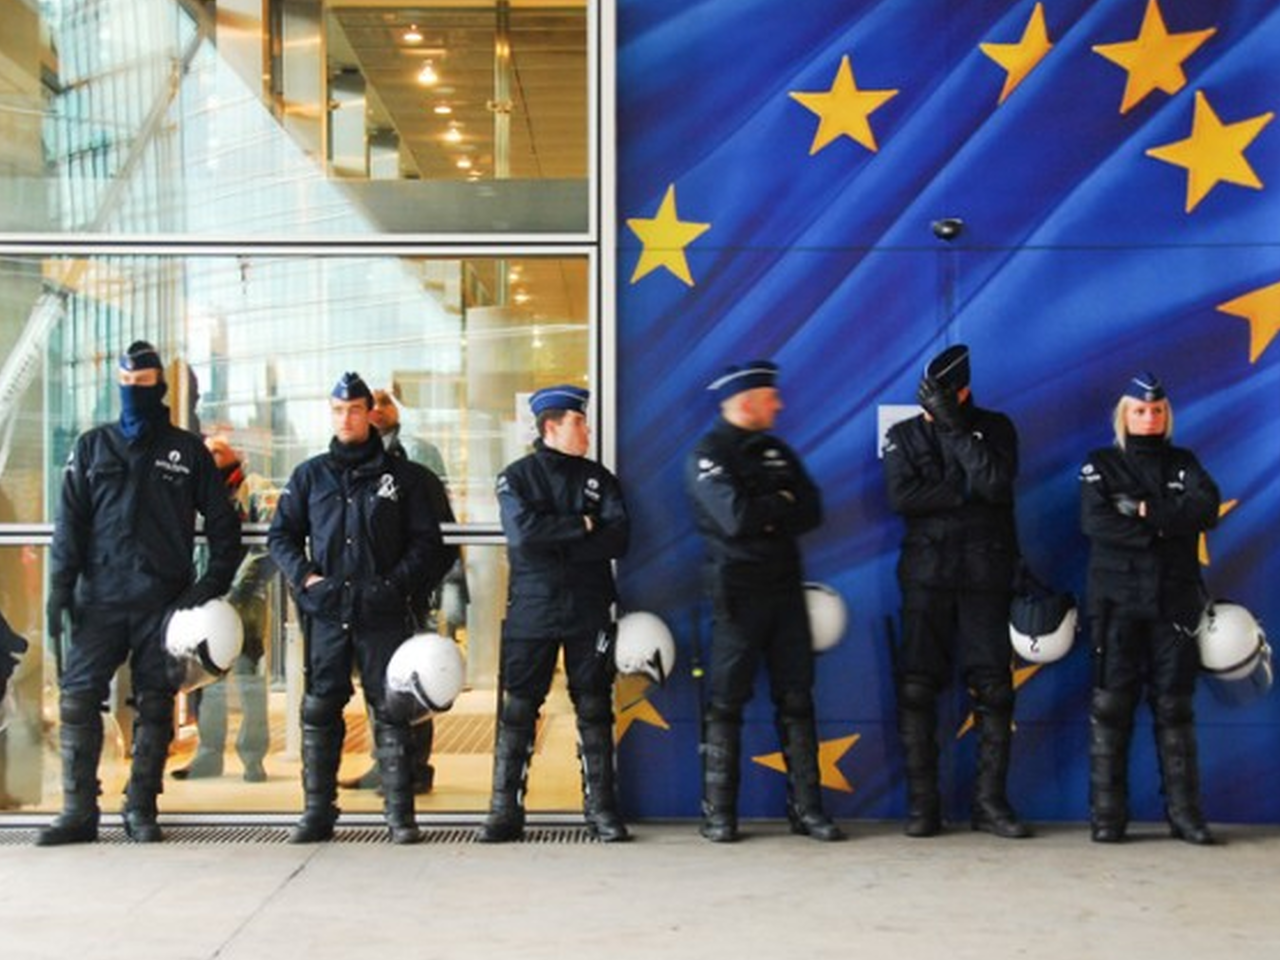 EU police group: Terror threat still acute